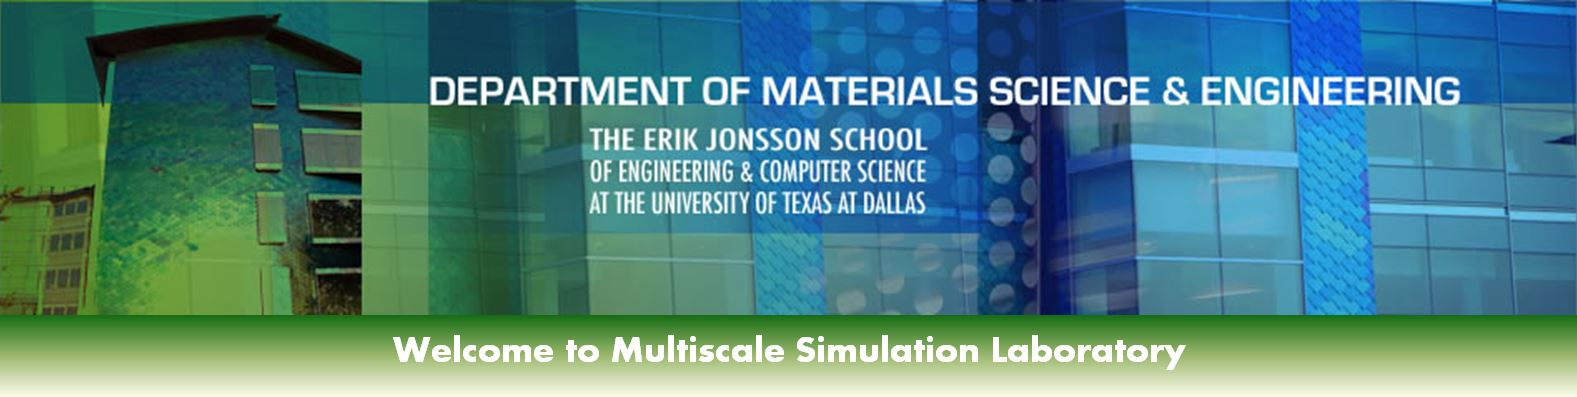 Welcome to Multiscale Simulation Lab at UT Dallas